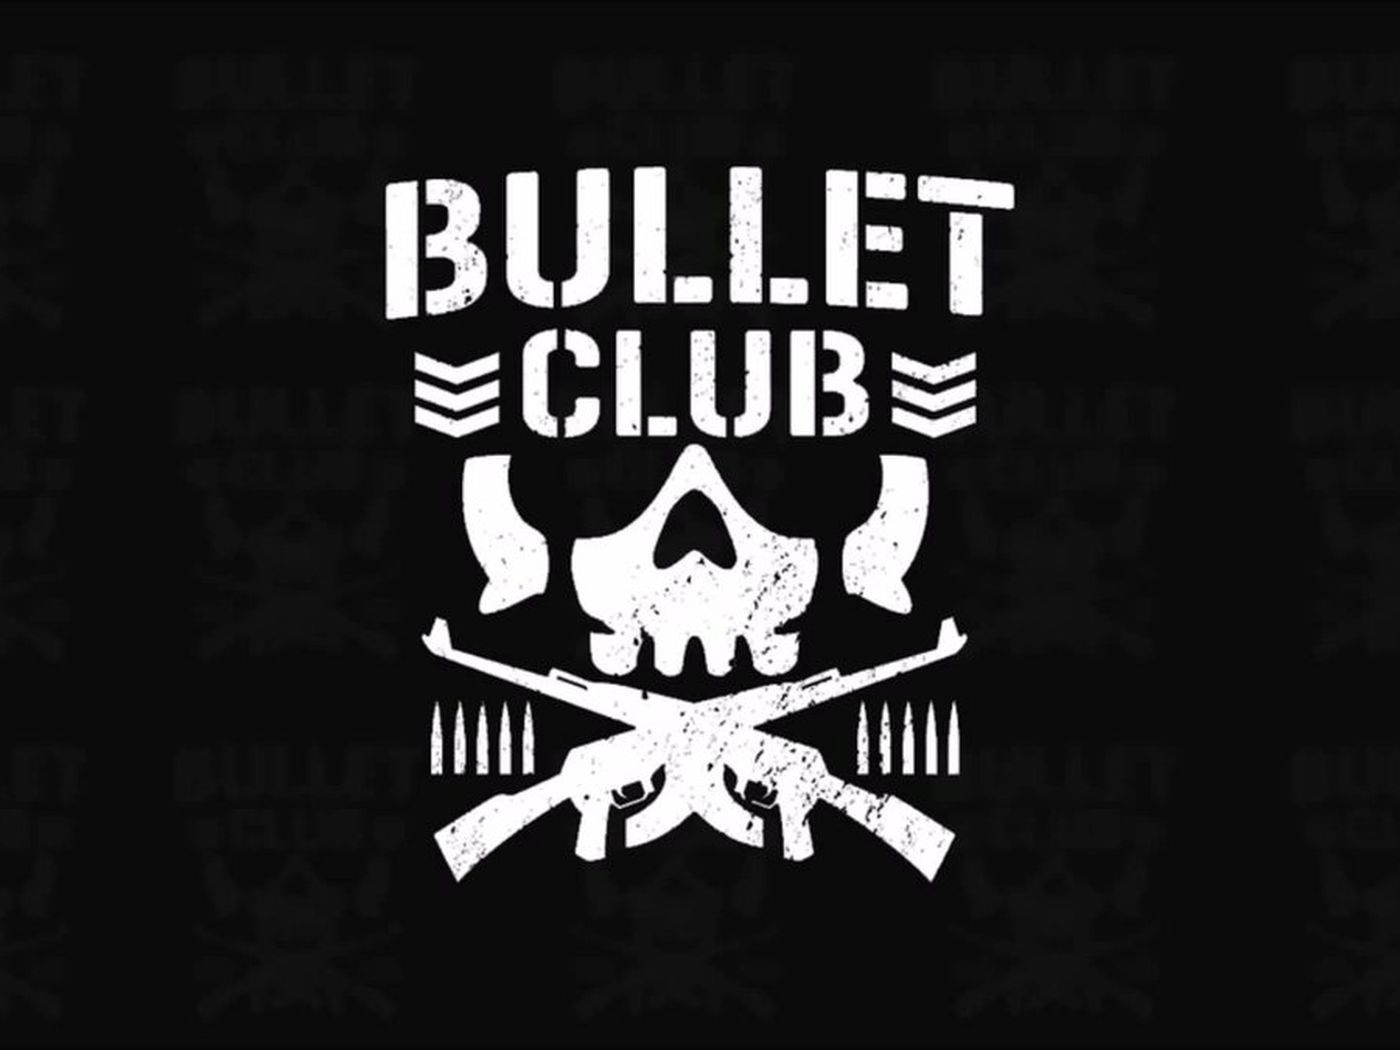 Whether Or Not Its Fine Bullet Club Might Be Getting A New Logo